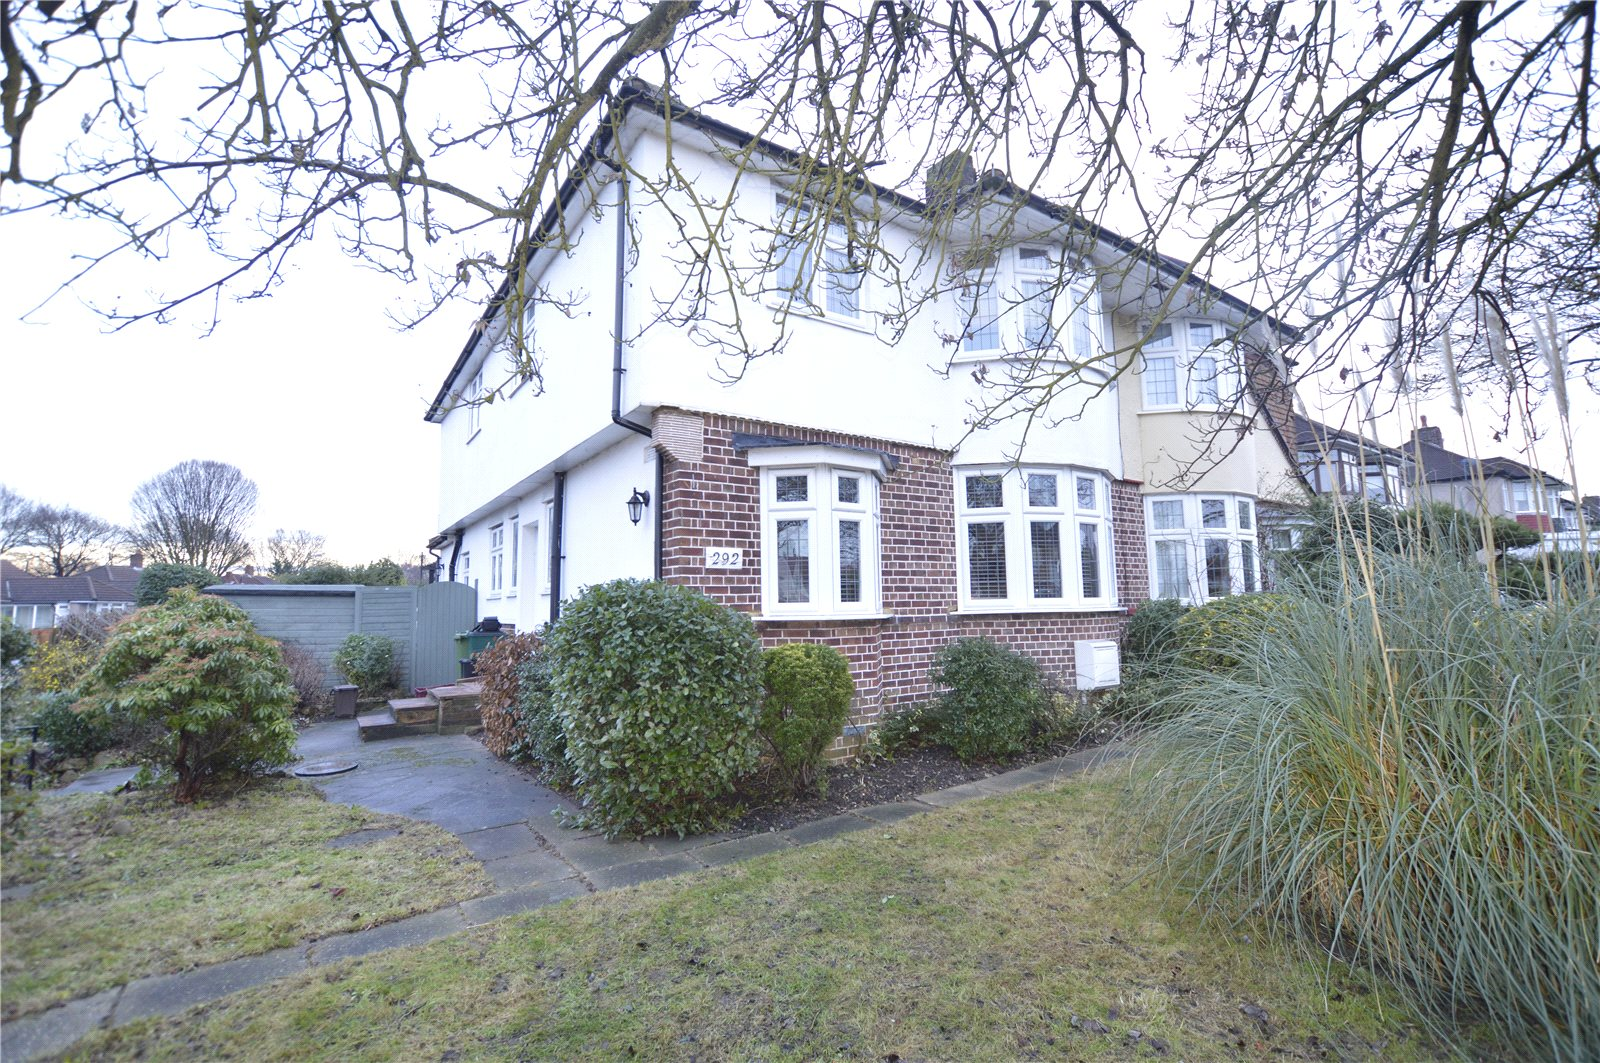 4 Bedrooms Semi Detached House for sale in Bexley Lane Sidcup Kent DA14